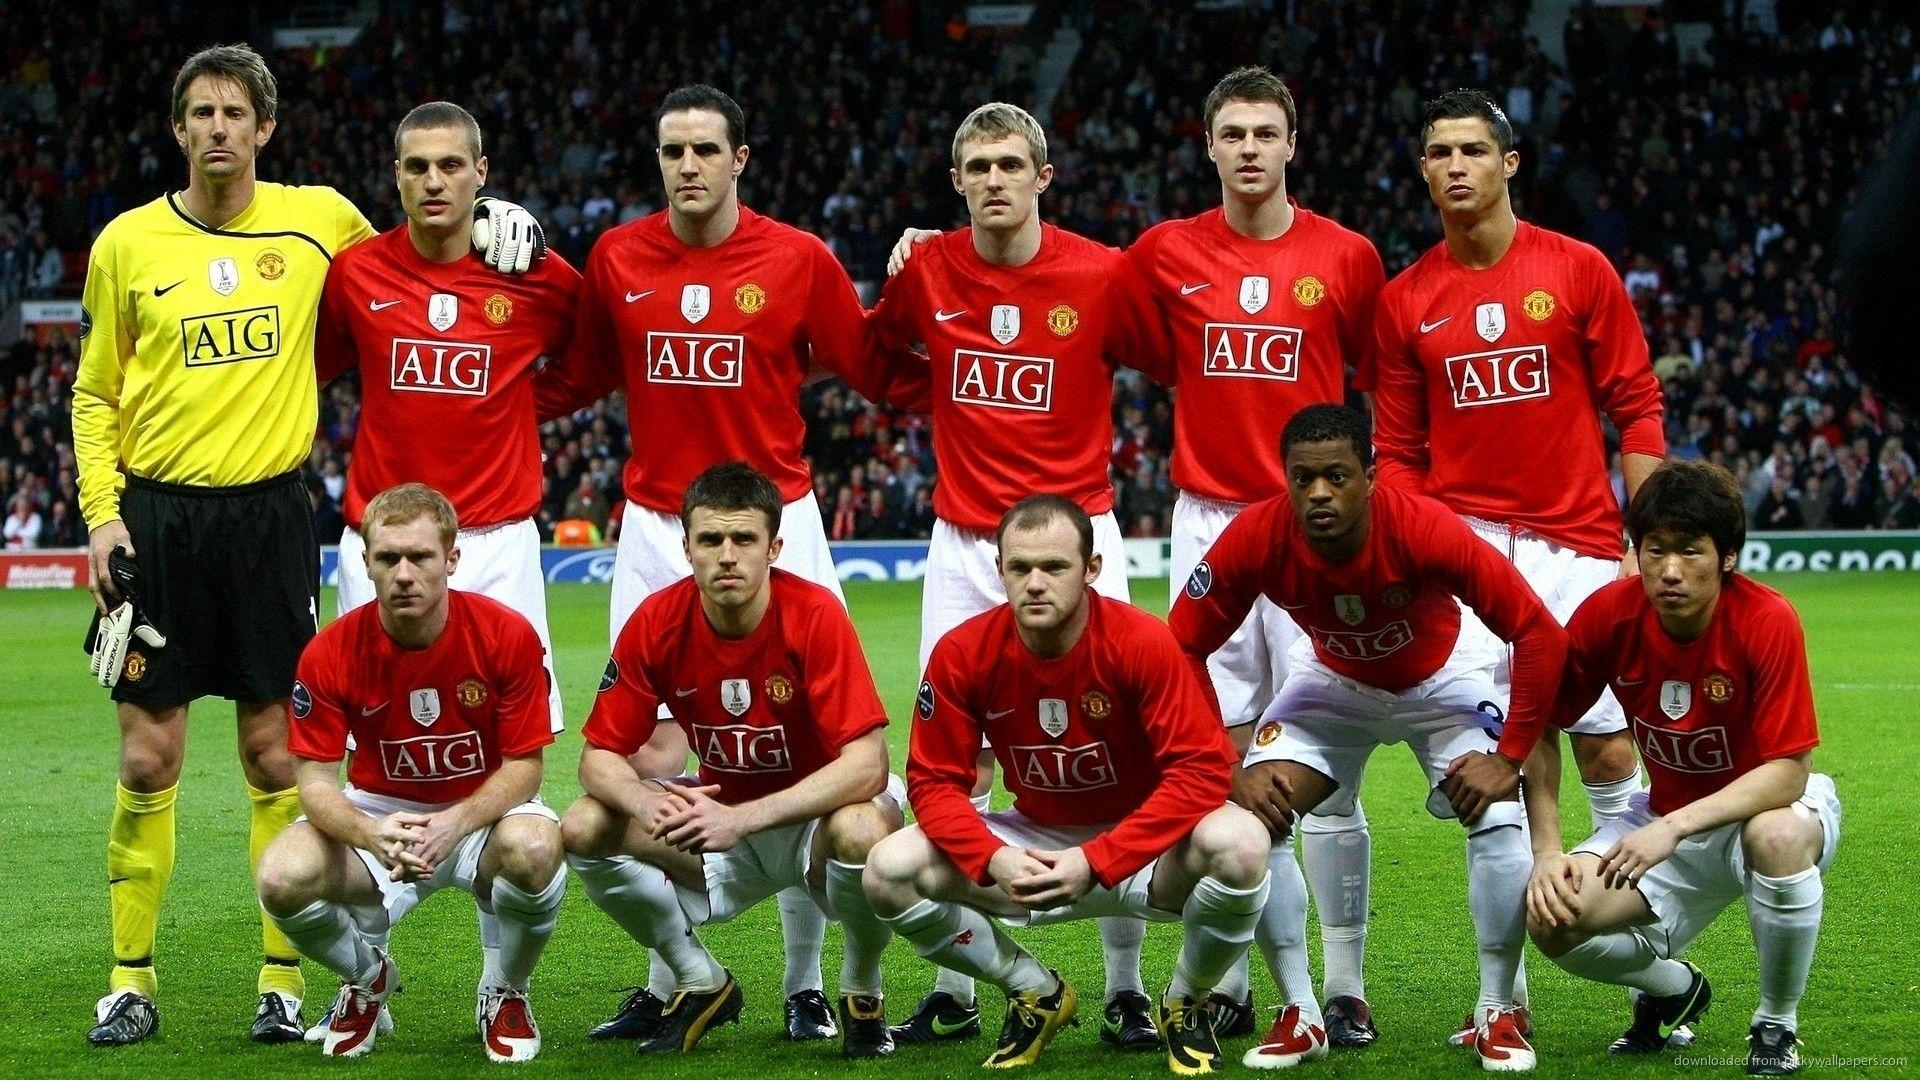 manchester united team wallpapers wallpaper cave manchester united team wallpapers